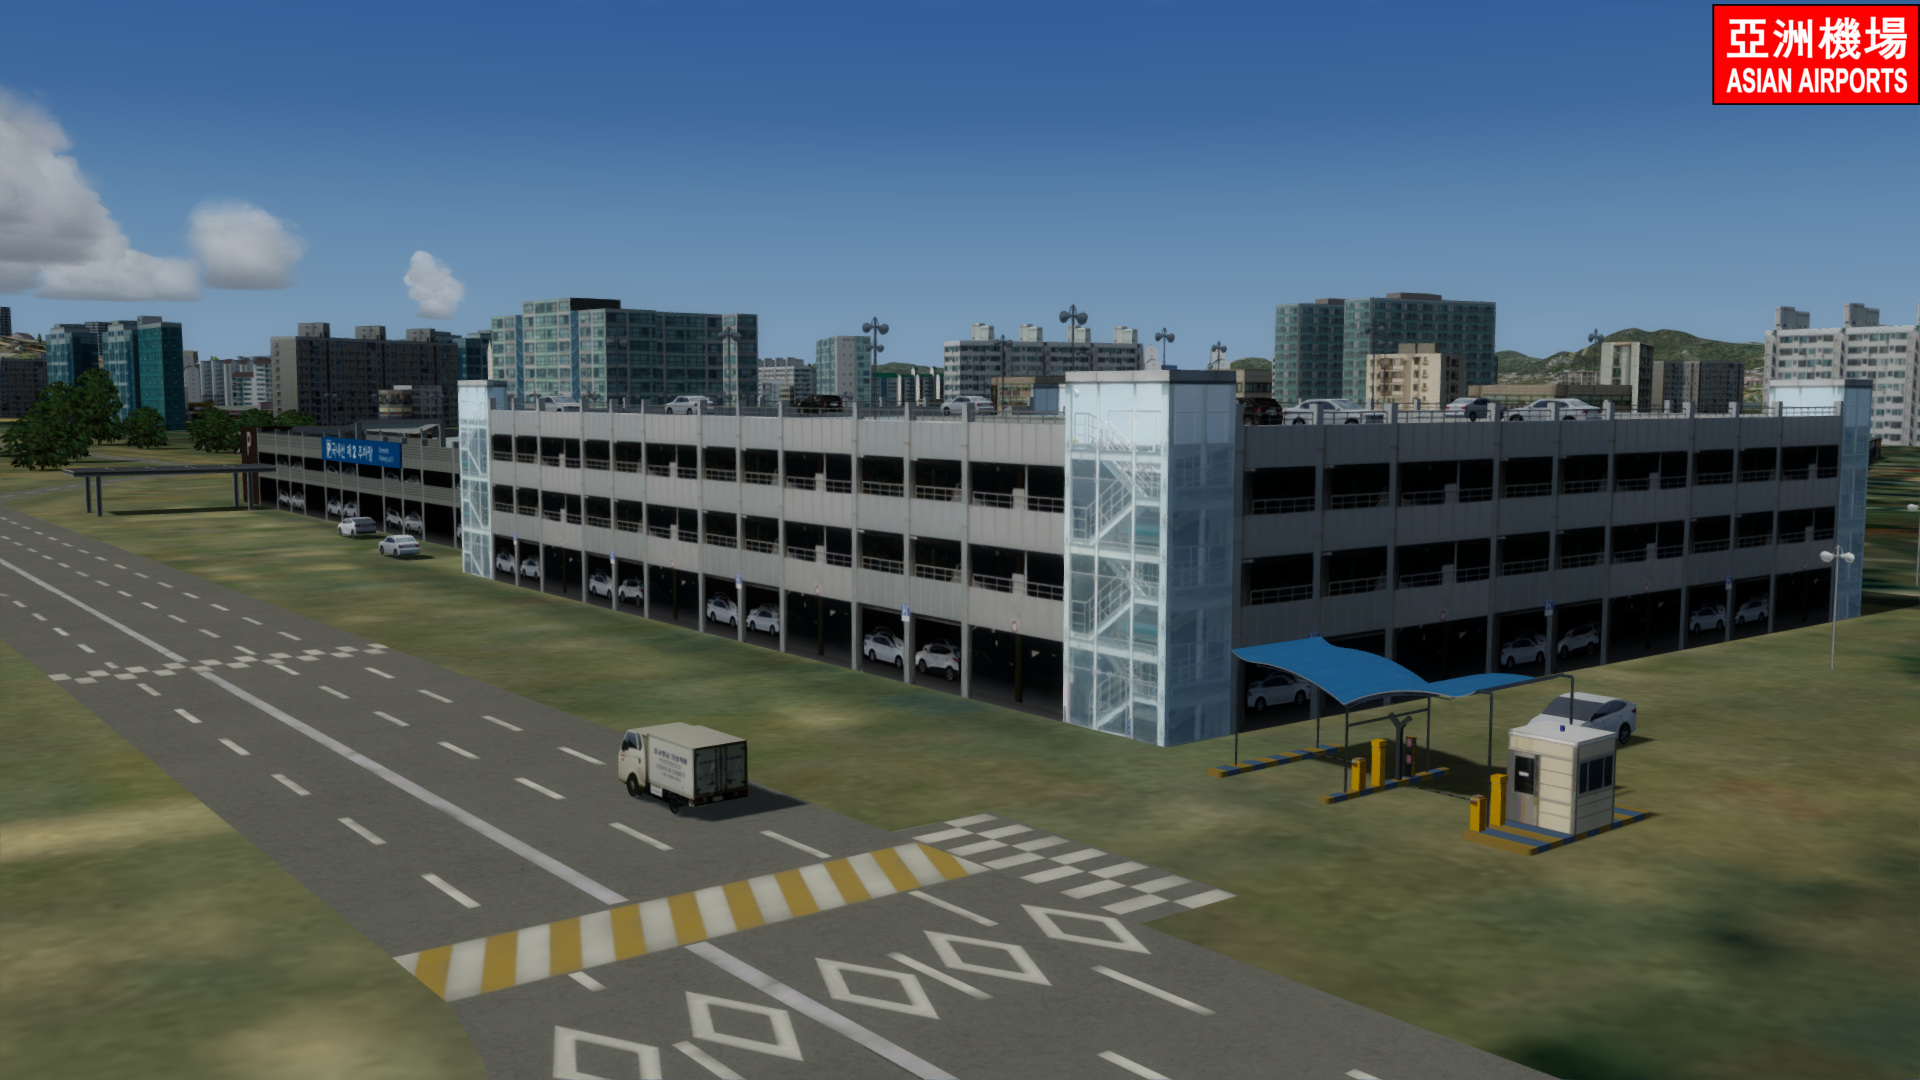 ASIAN AIRPORTS - SEOUL GIMPO INTERNATIONAL RKSS FSX P3D